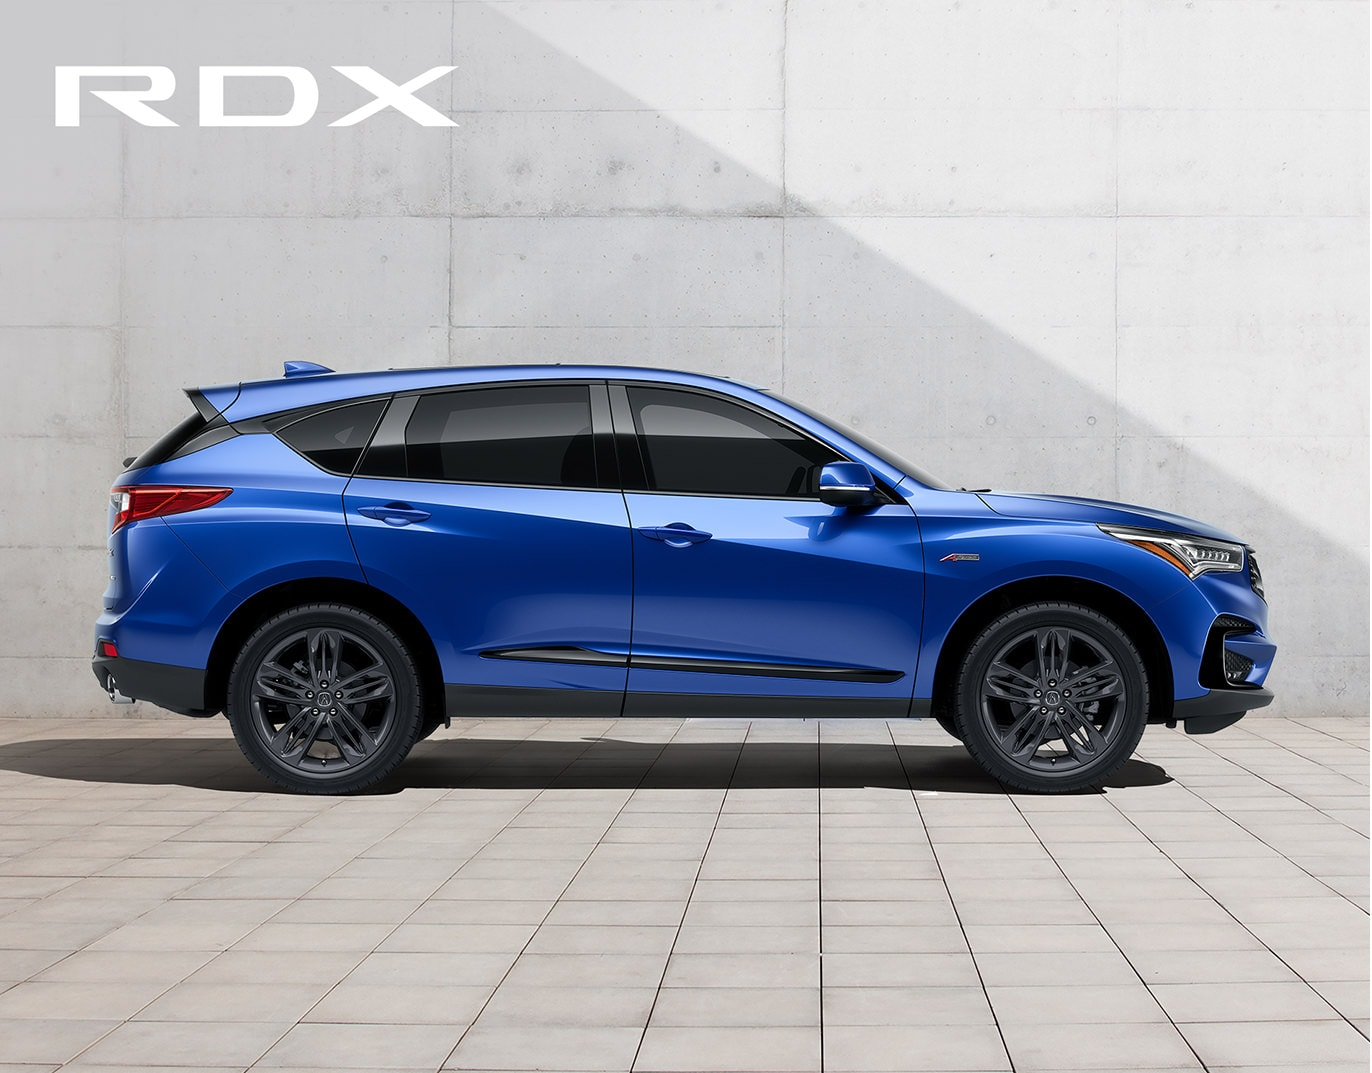 Luxury Sedans And SUVs Acuracom - 2018 acura mdx price